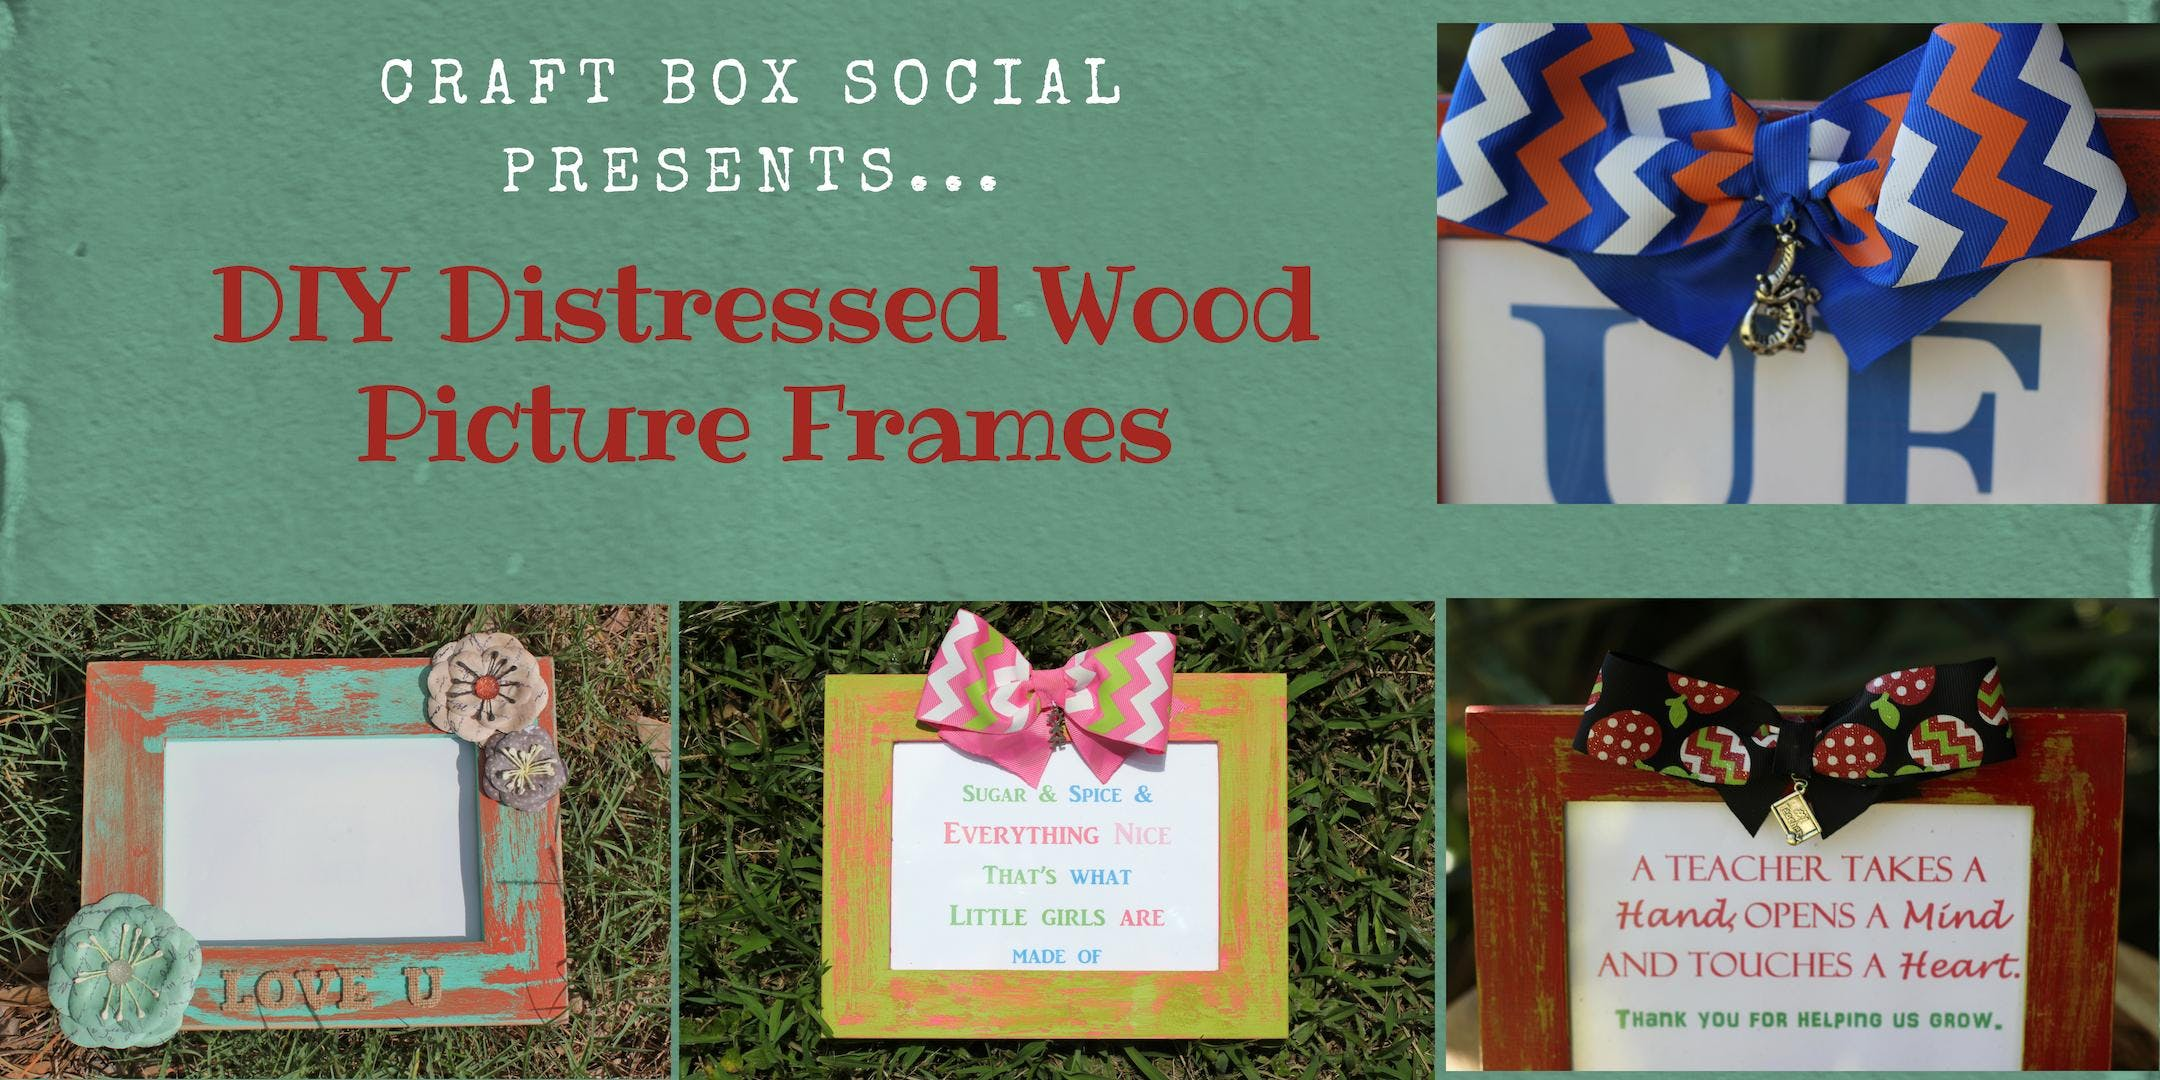 DIY Distressed Wood Picture Frames with Craft